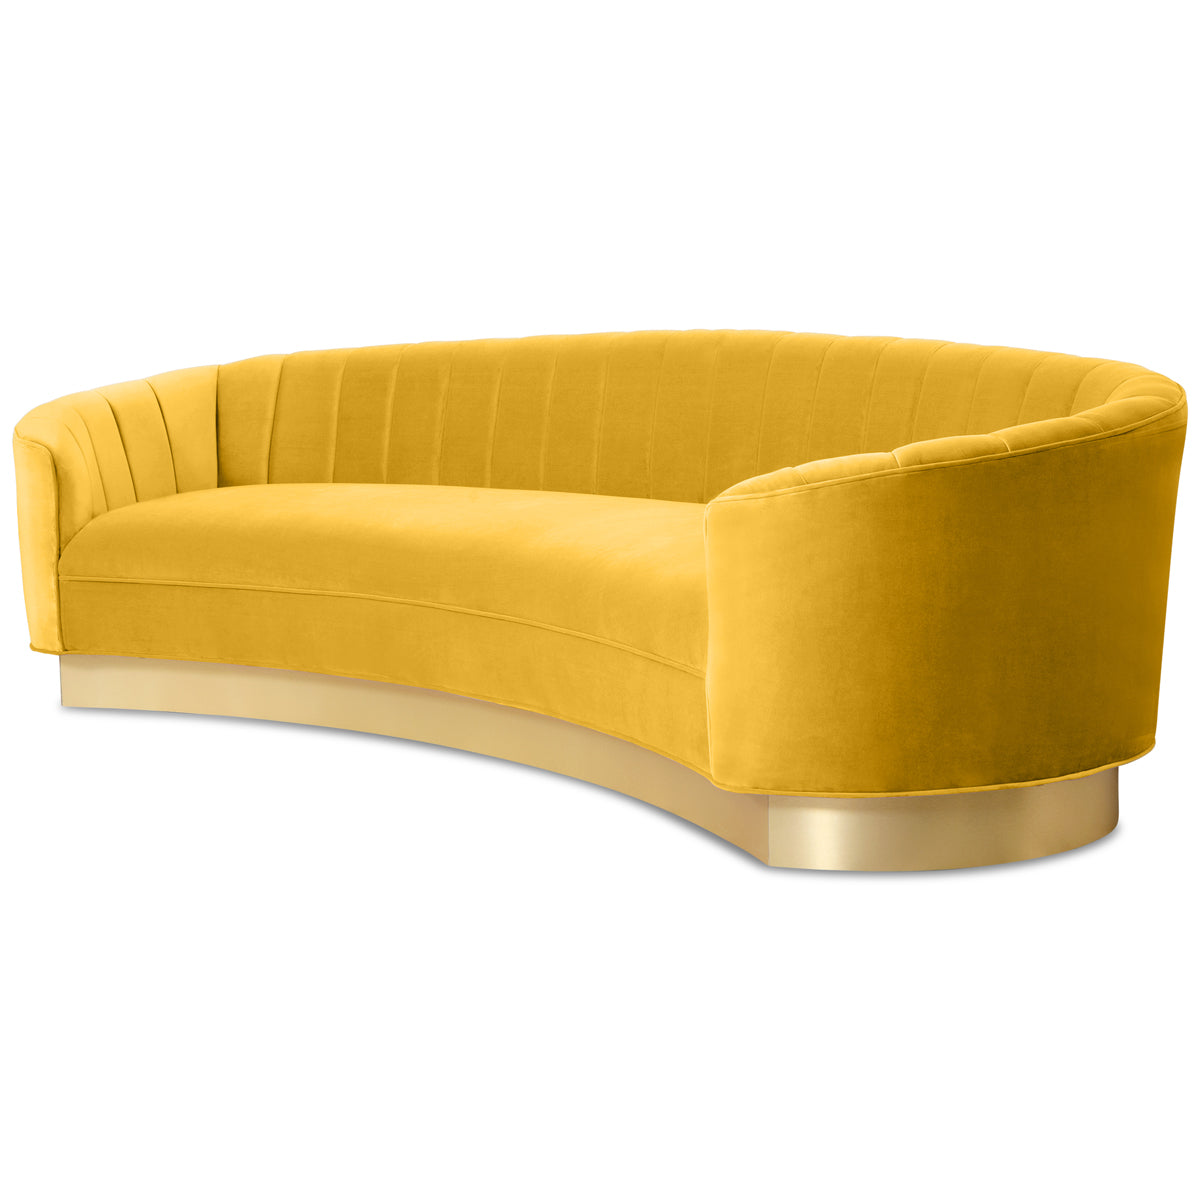 Art Deco 2 Sofa in Velvet - ModShop1.com